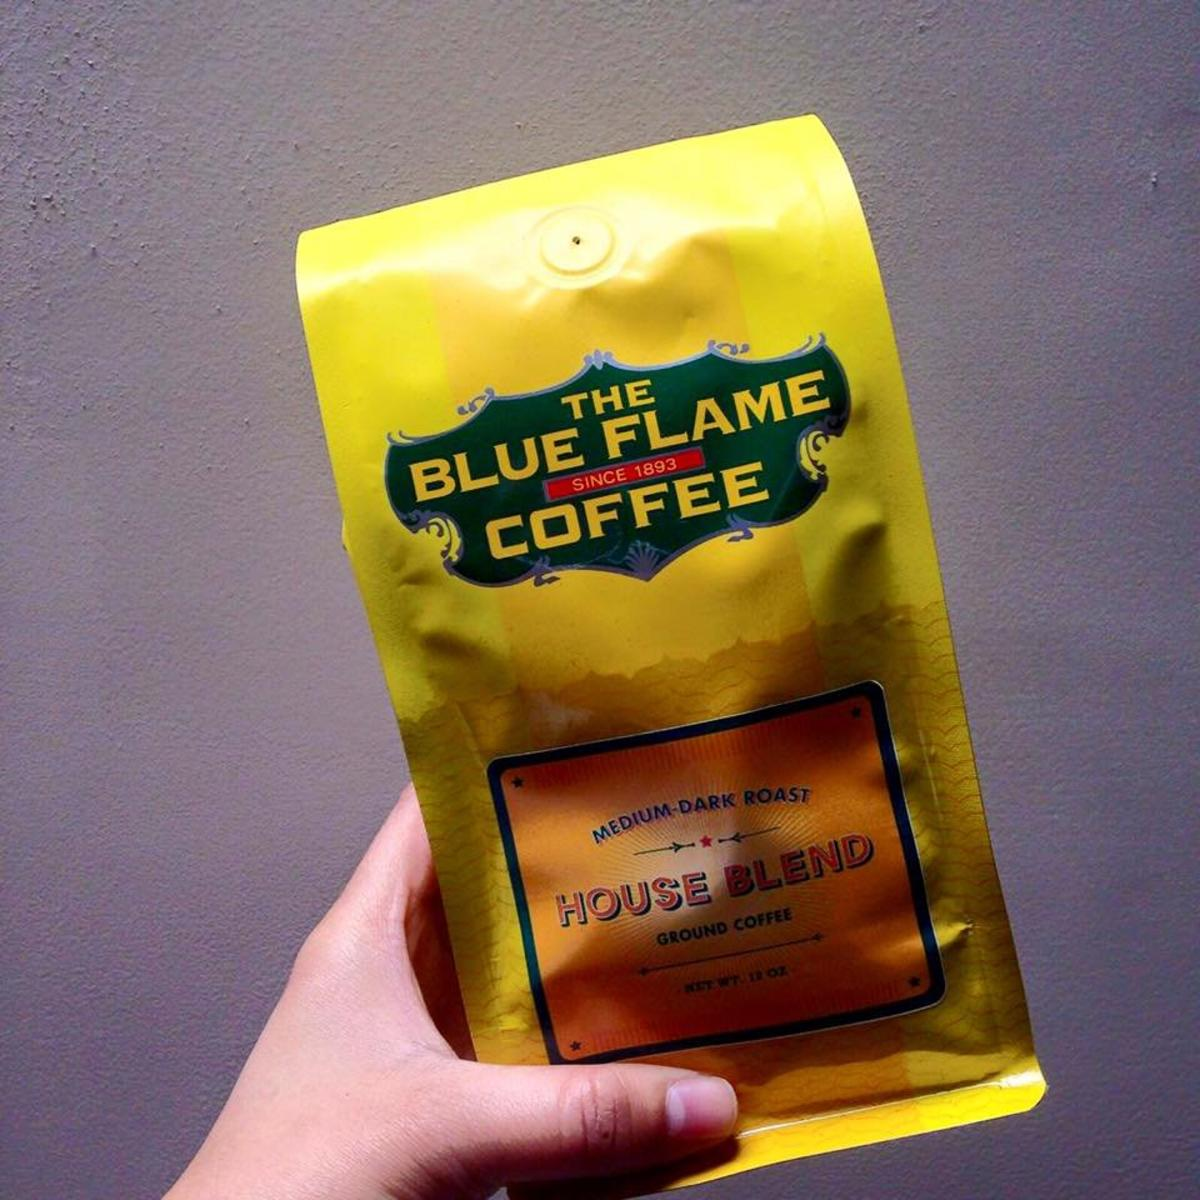 The Blue Flame Coffee